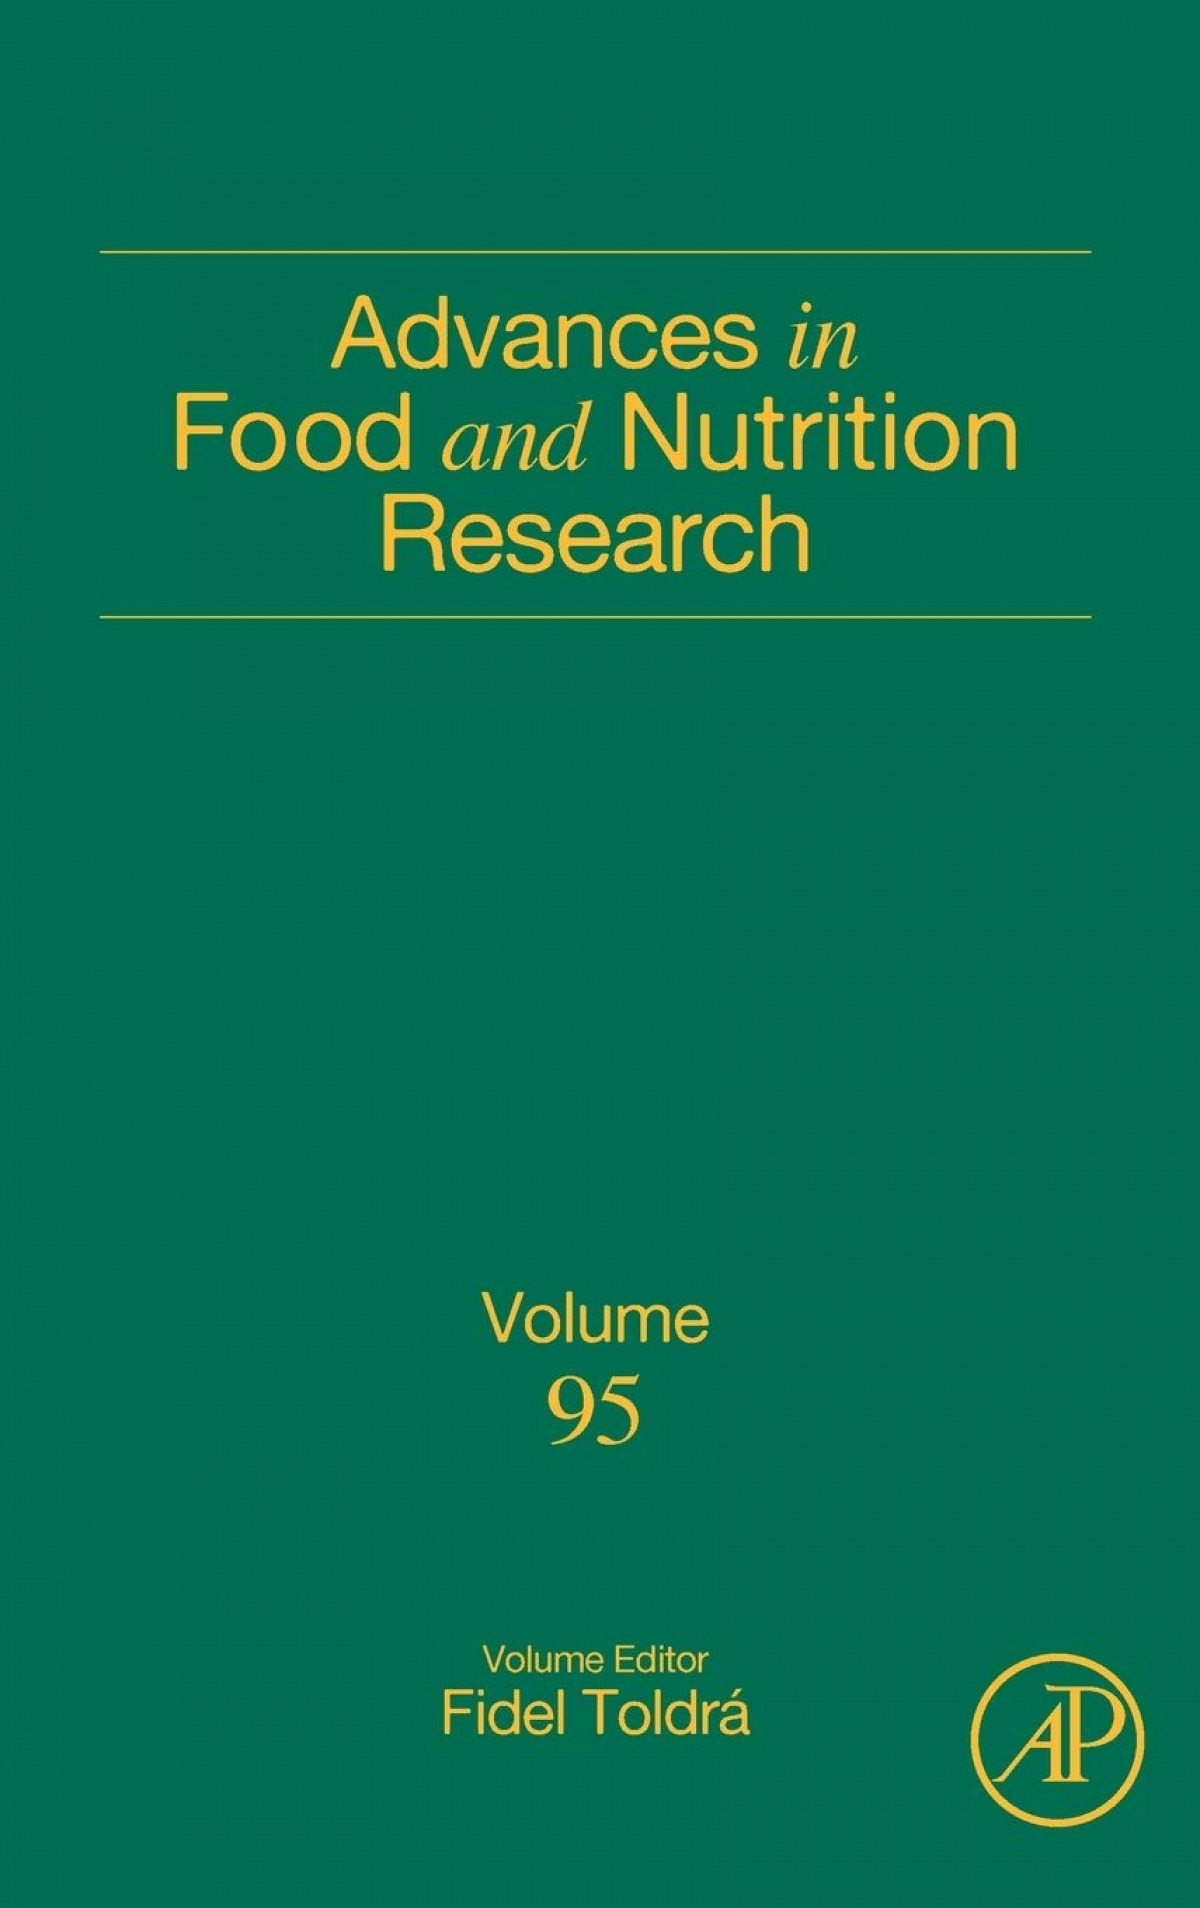 ADVANCED IN FOOD NUTRITION RESEARCH VOL.95